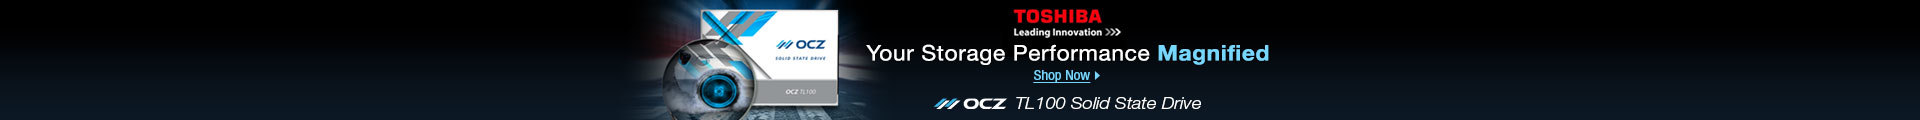 Your Storage Performance Magnified